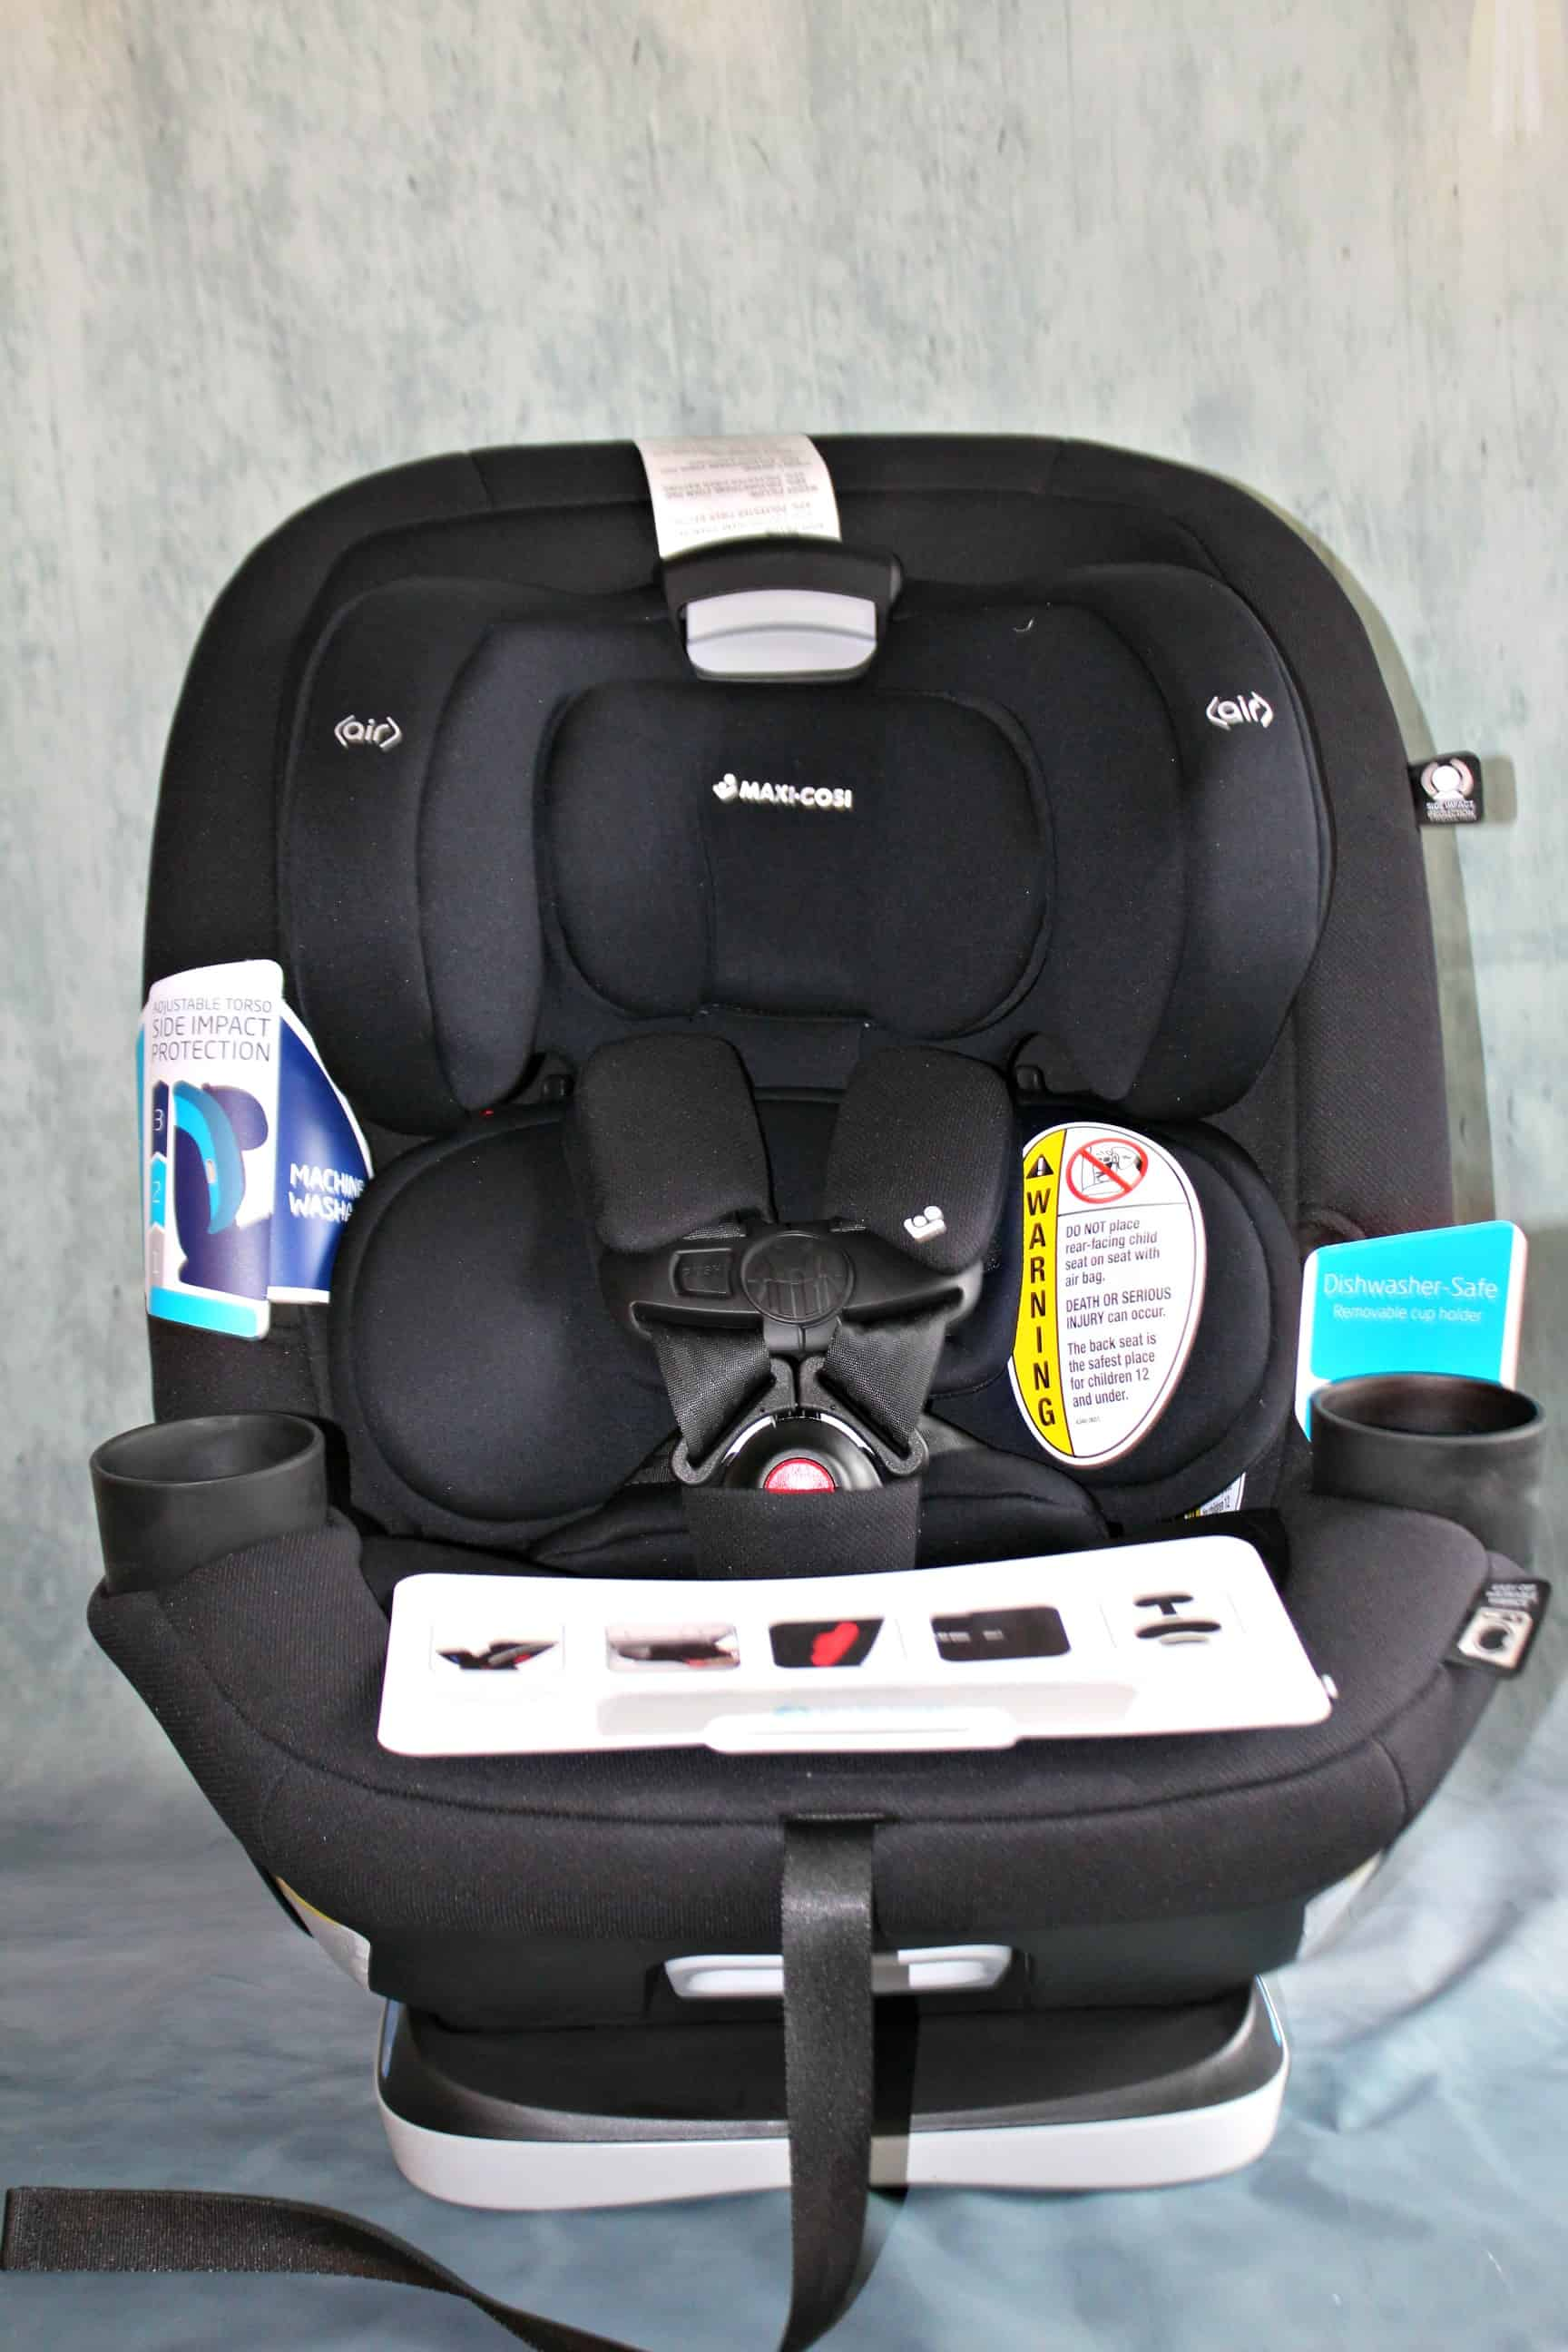 Maxi Cosi Magellan is the best car seat available